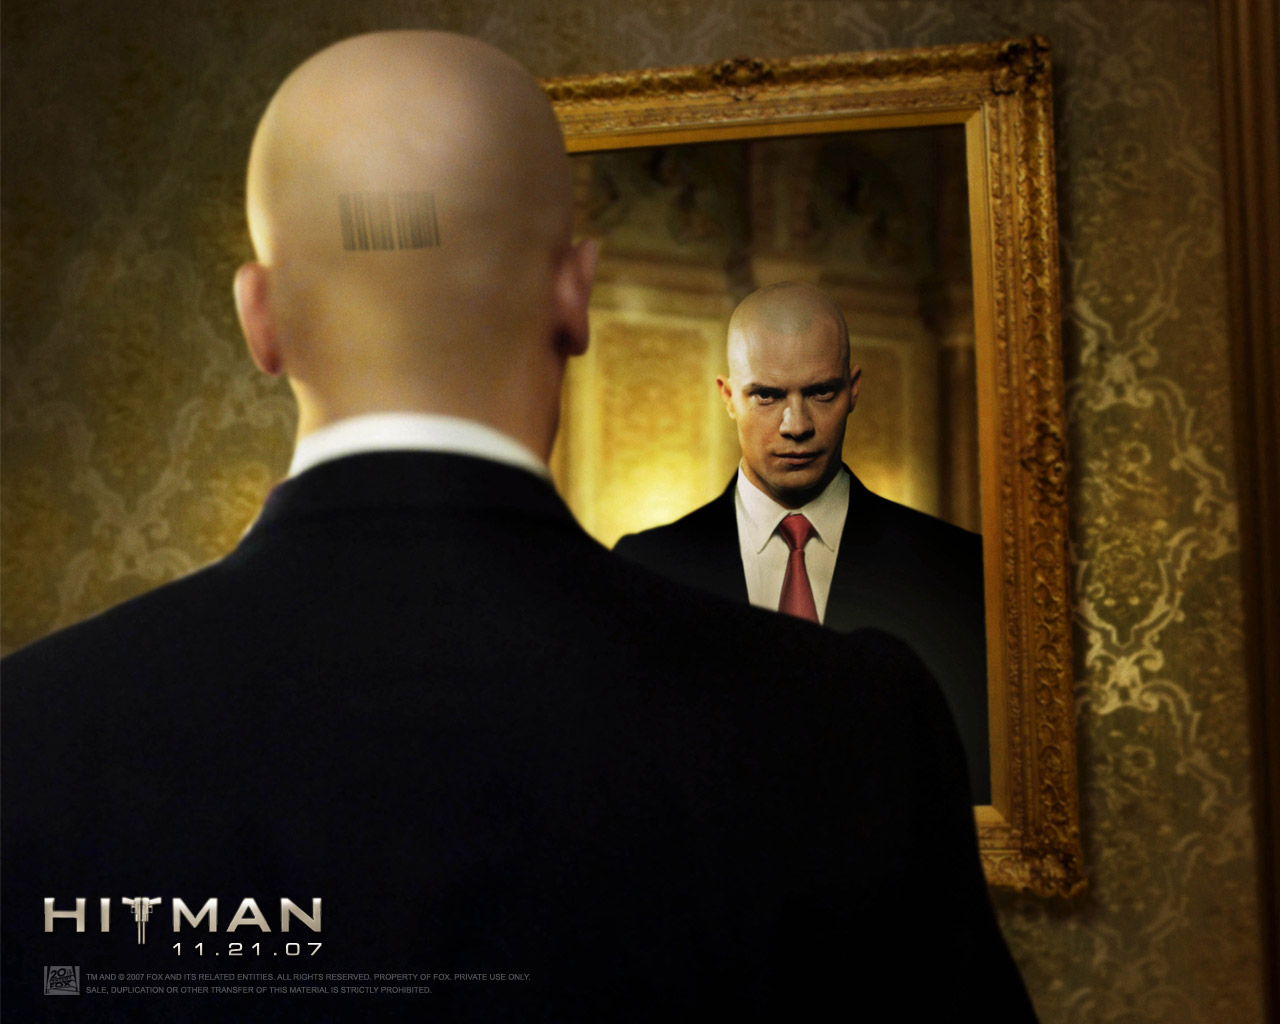 Hitman   Movies Wallpaper 433258 1280x1024